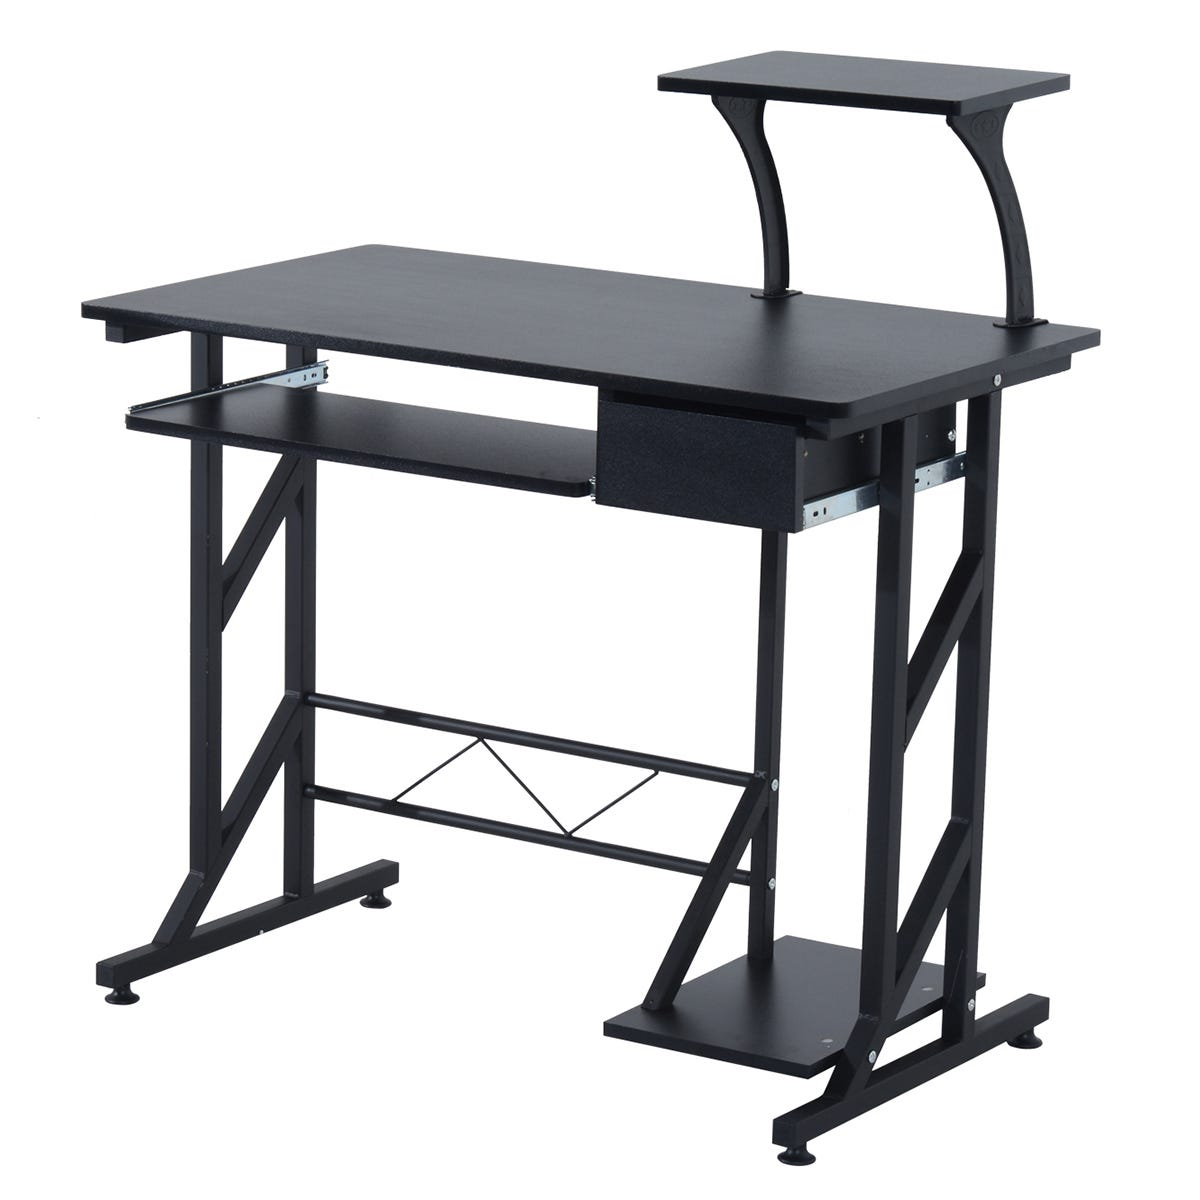 Zennor Space Saving Computer Desk with Storage - Black